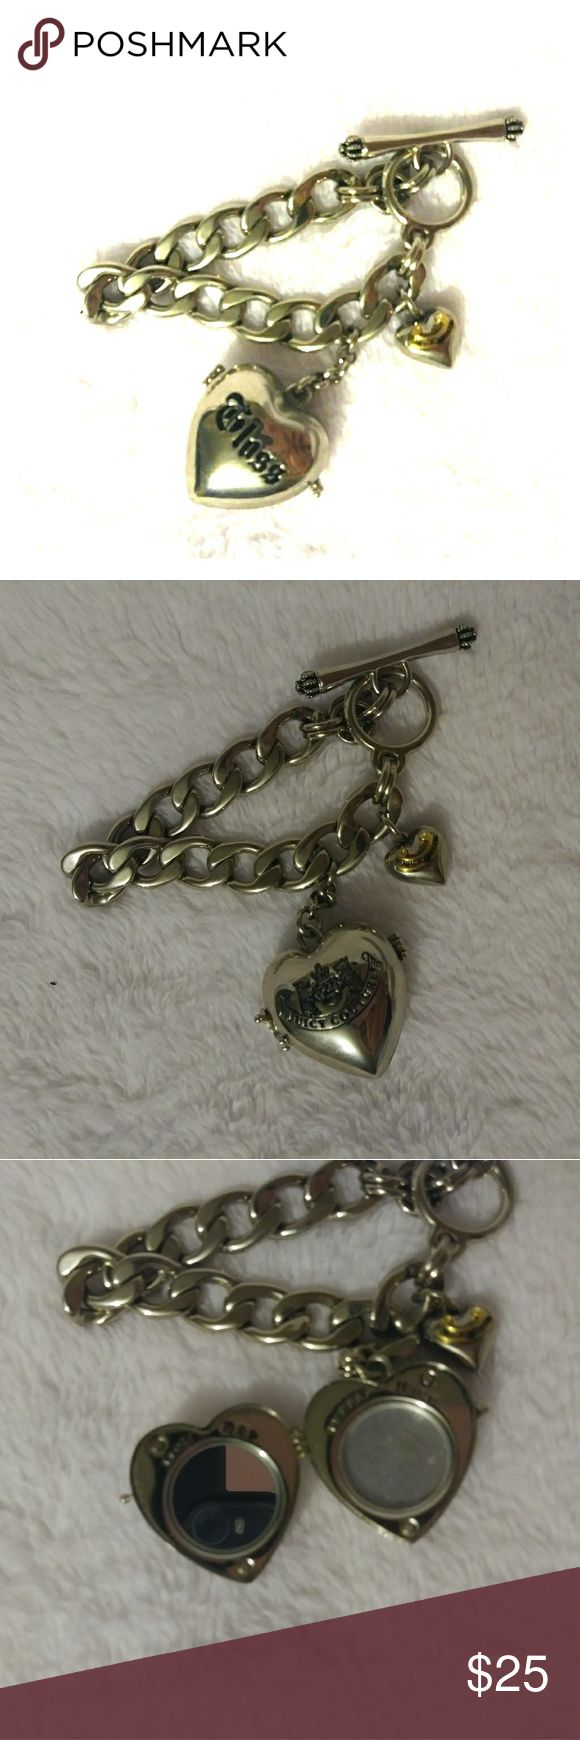 Rare Juicy Couture locket charm bracelet! EUC Juicy Couture lip gloss locket bracelet. Silver in color and has a clasp that keeps the locket closed as well as magnets. Mirror side is in excellent shape and you can purchase lip gloss refills on places like Etsy. Could also be used to store a cute photo! No wear or tear or discoloration. Juicy Couture Jewelry Bracelets